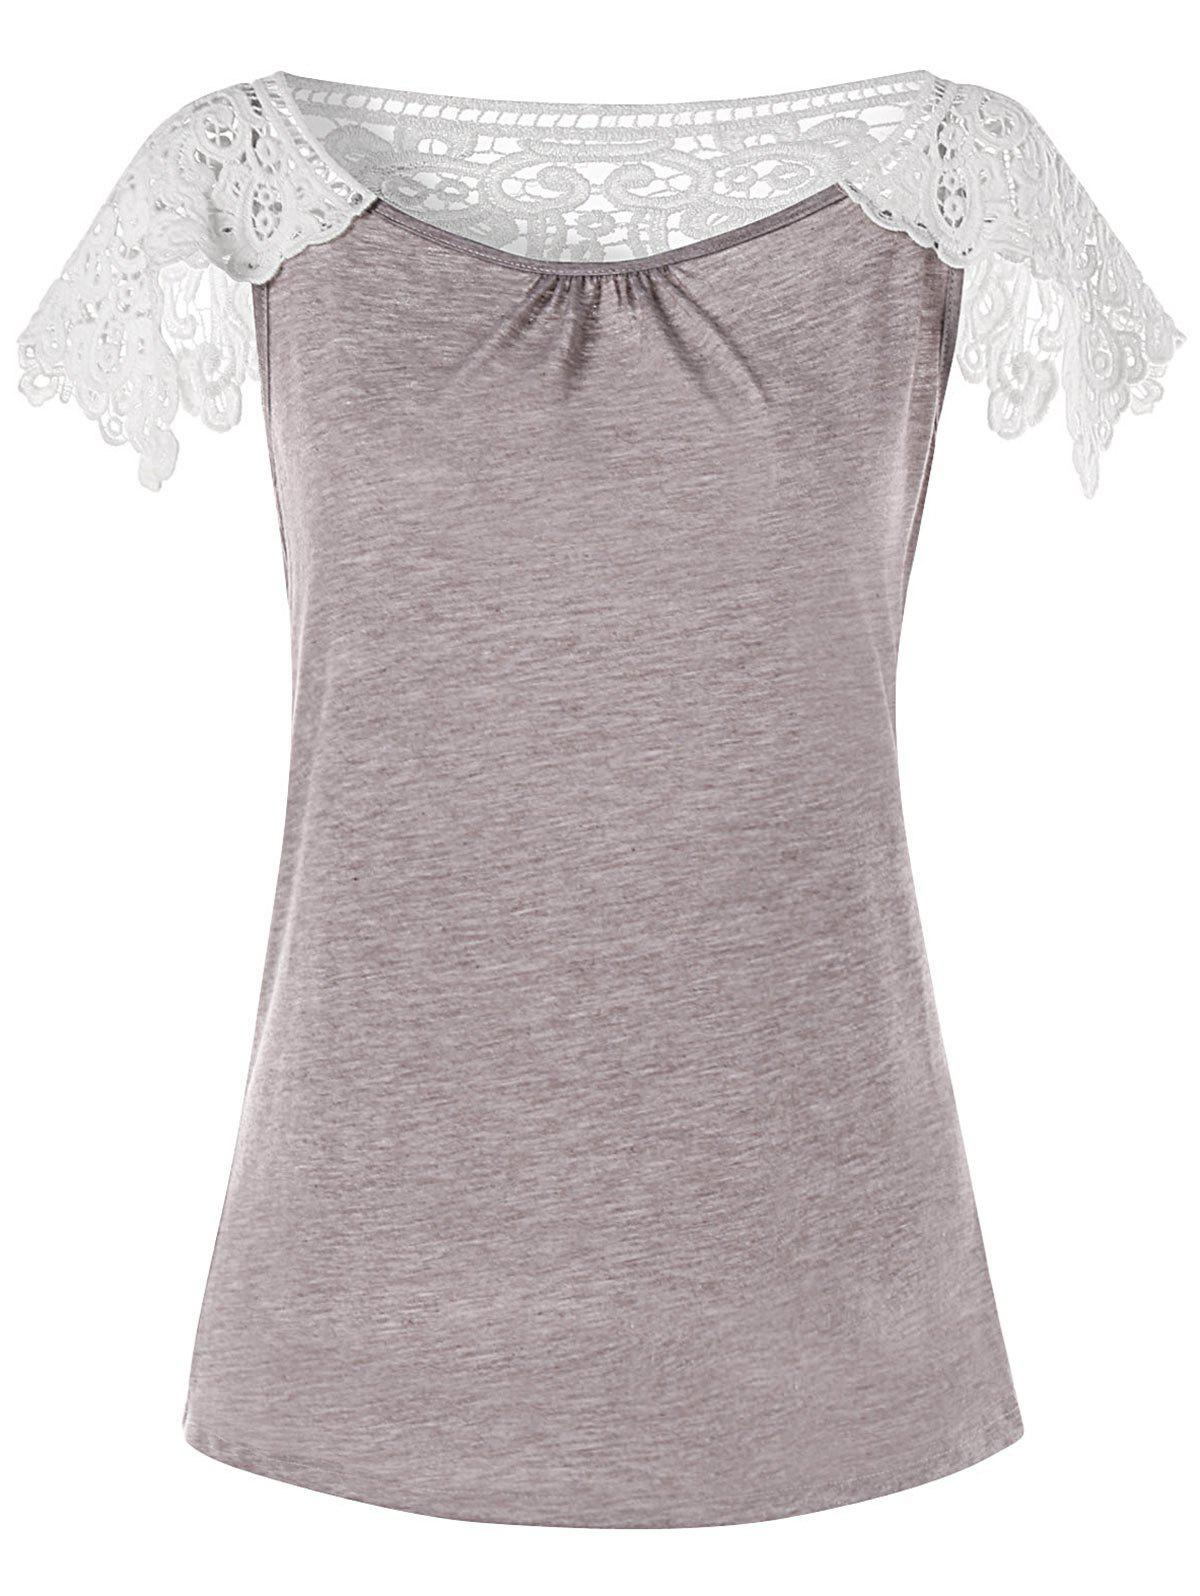 Store Crochet Lace Panel T-shirt